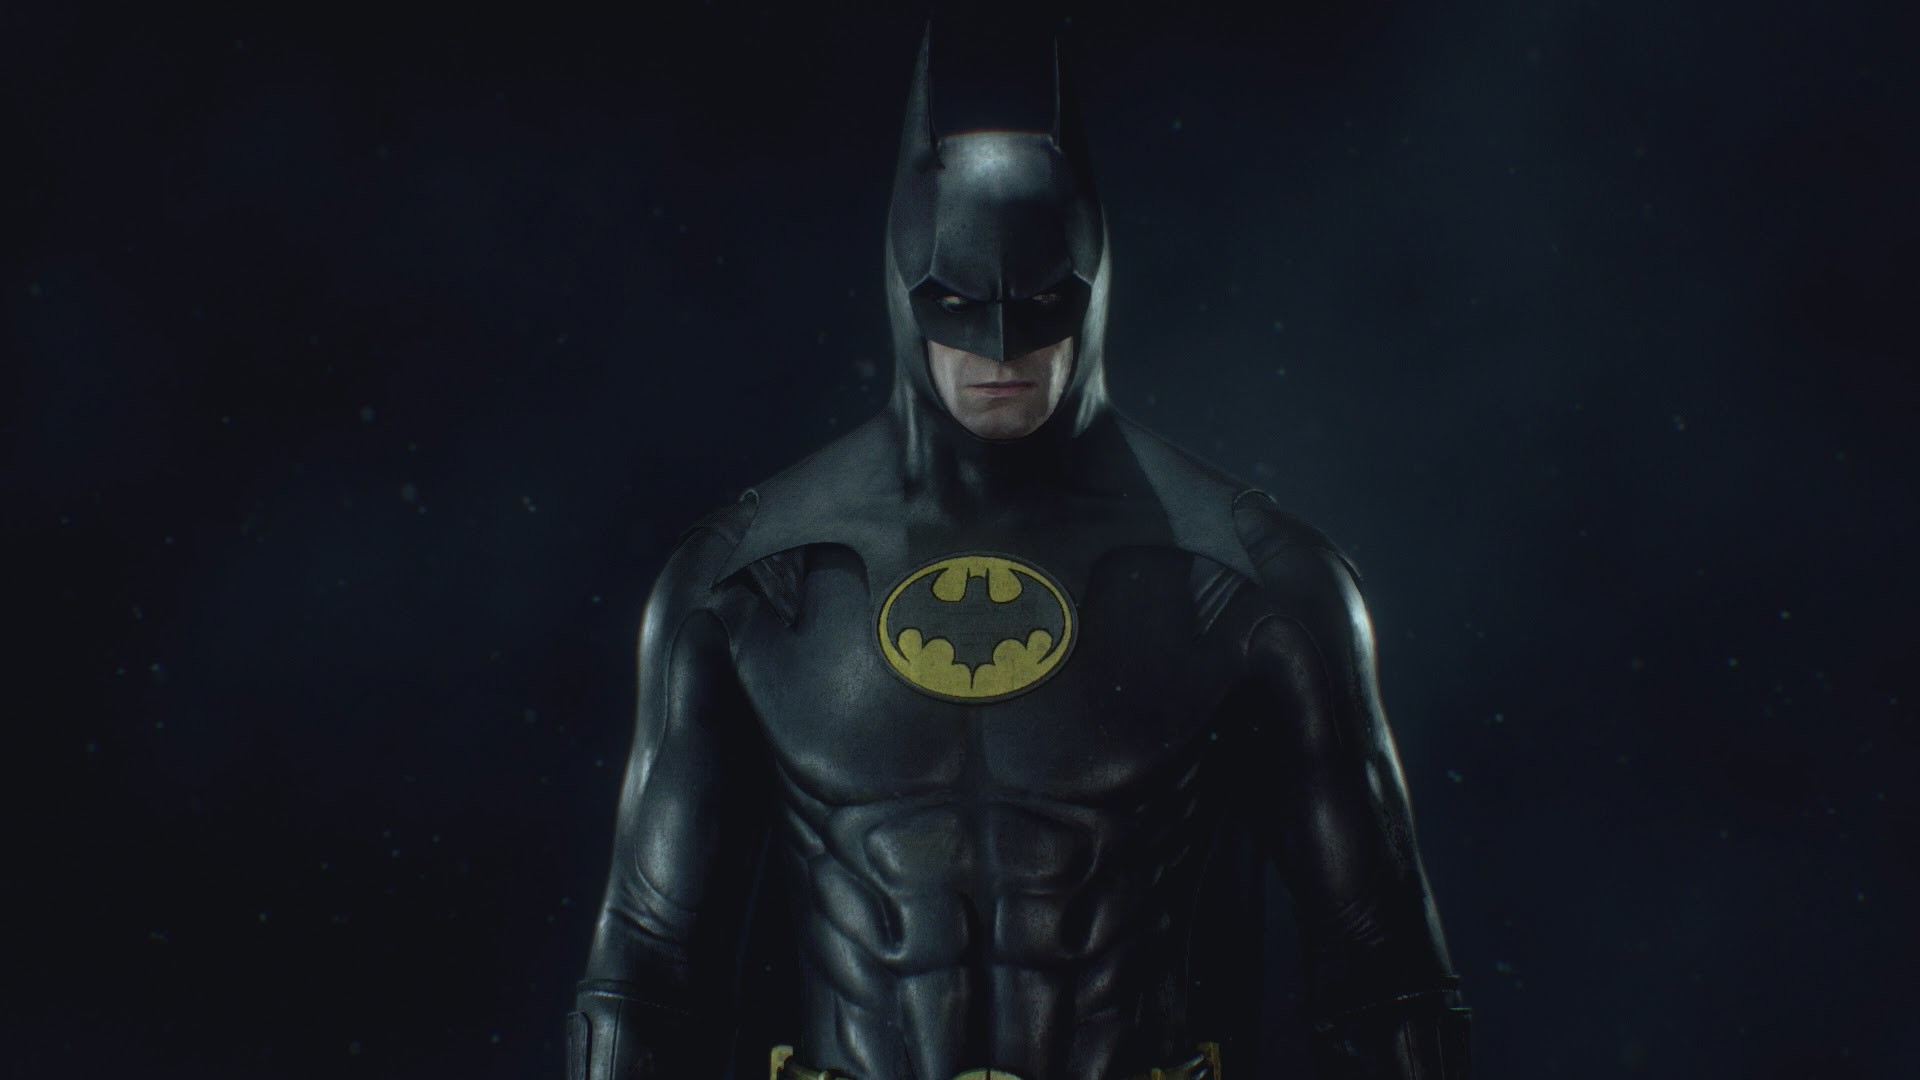 1920x1080 Batman: Arkham Knight - 1989 Batman Skin (Michael Keaton) Skin Showcase +  Gameplay!